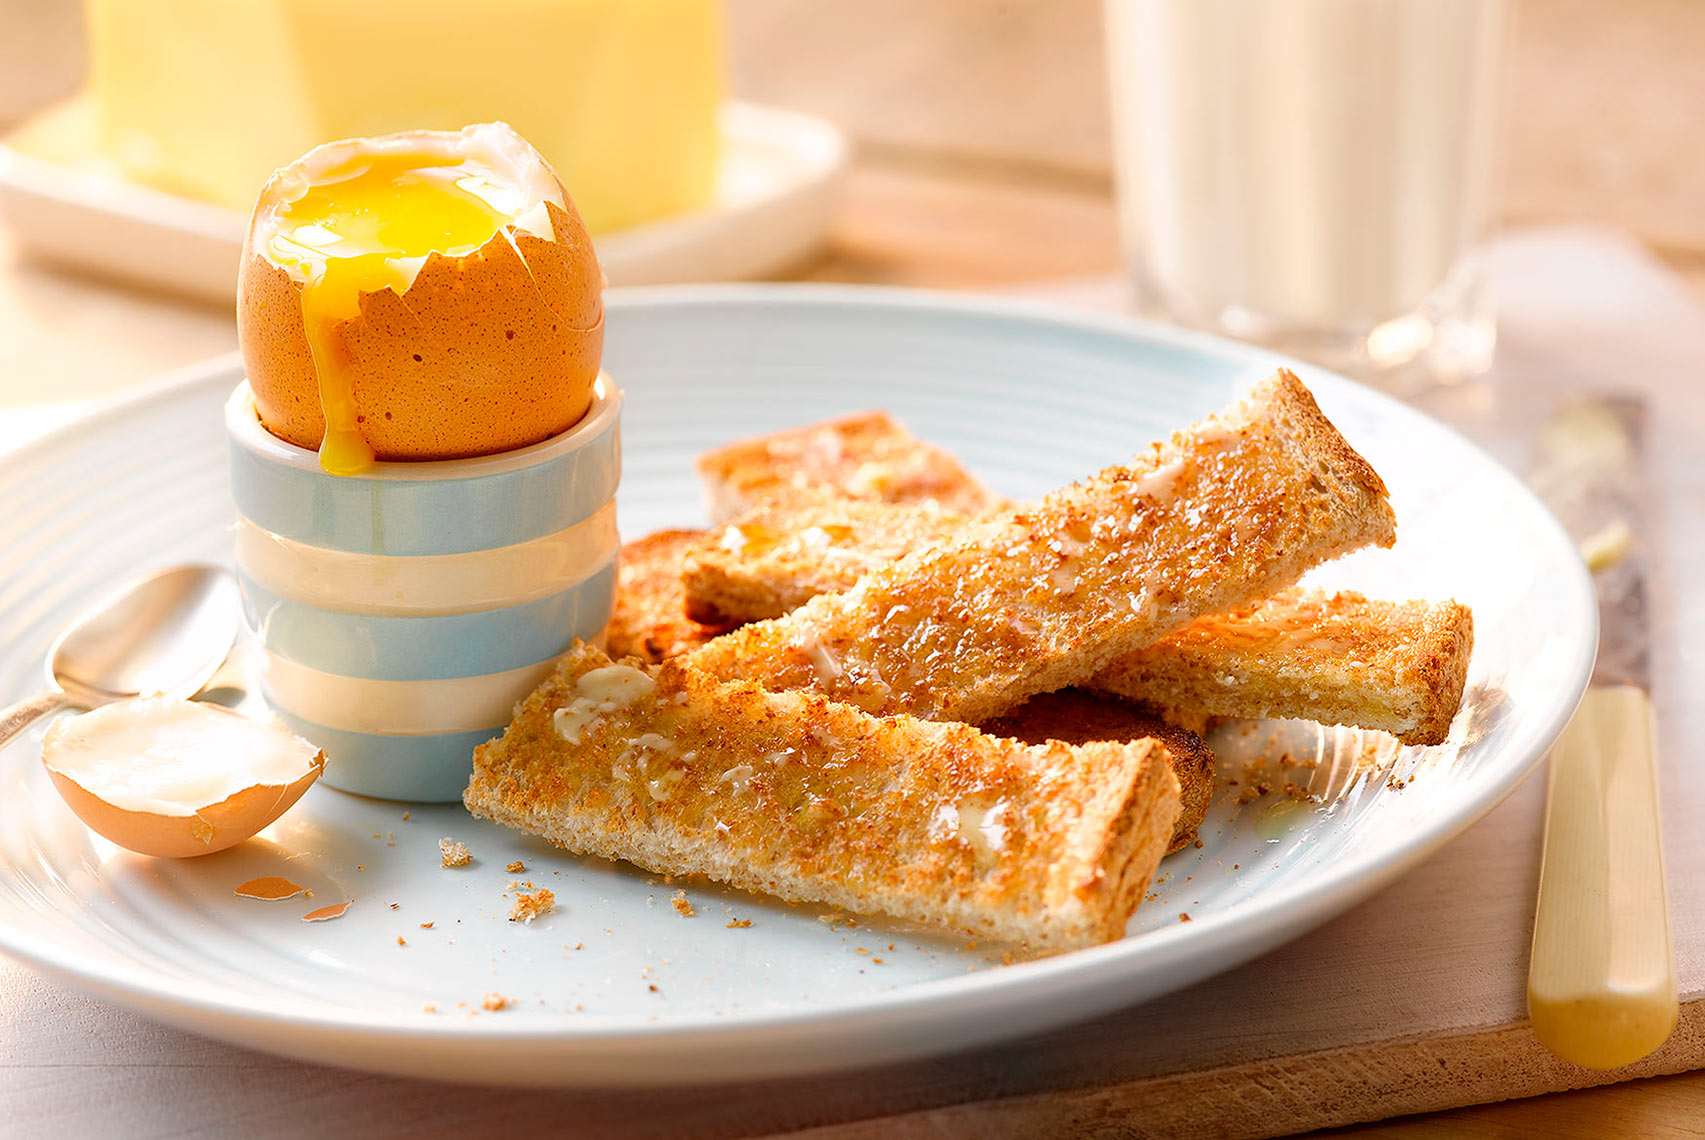 Egg and soldiers | Colin Campbell-Food Photographer